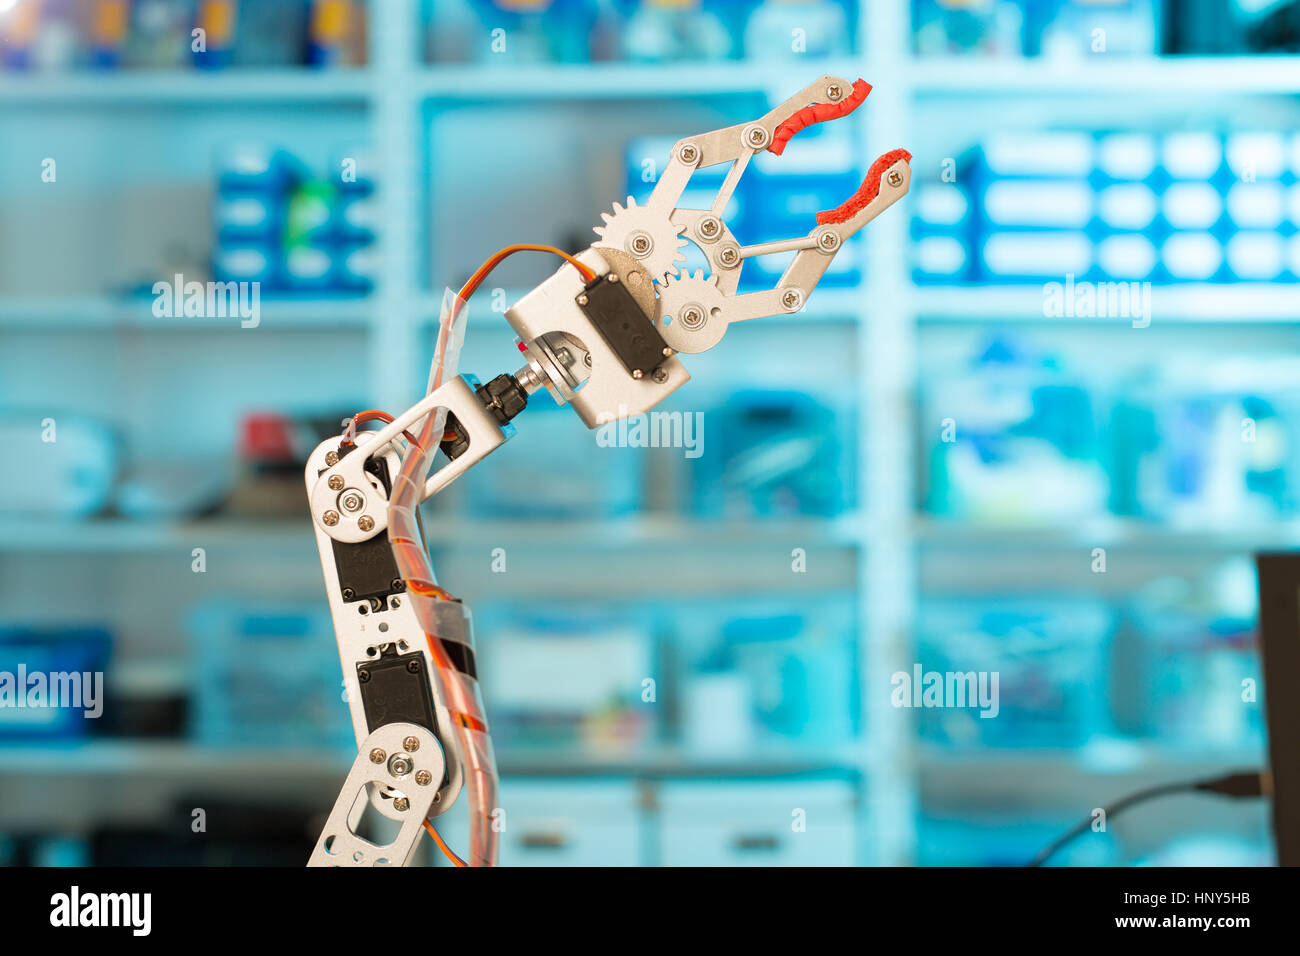 Model of industrial robot manipulator, robot arm - Stock Image